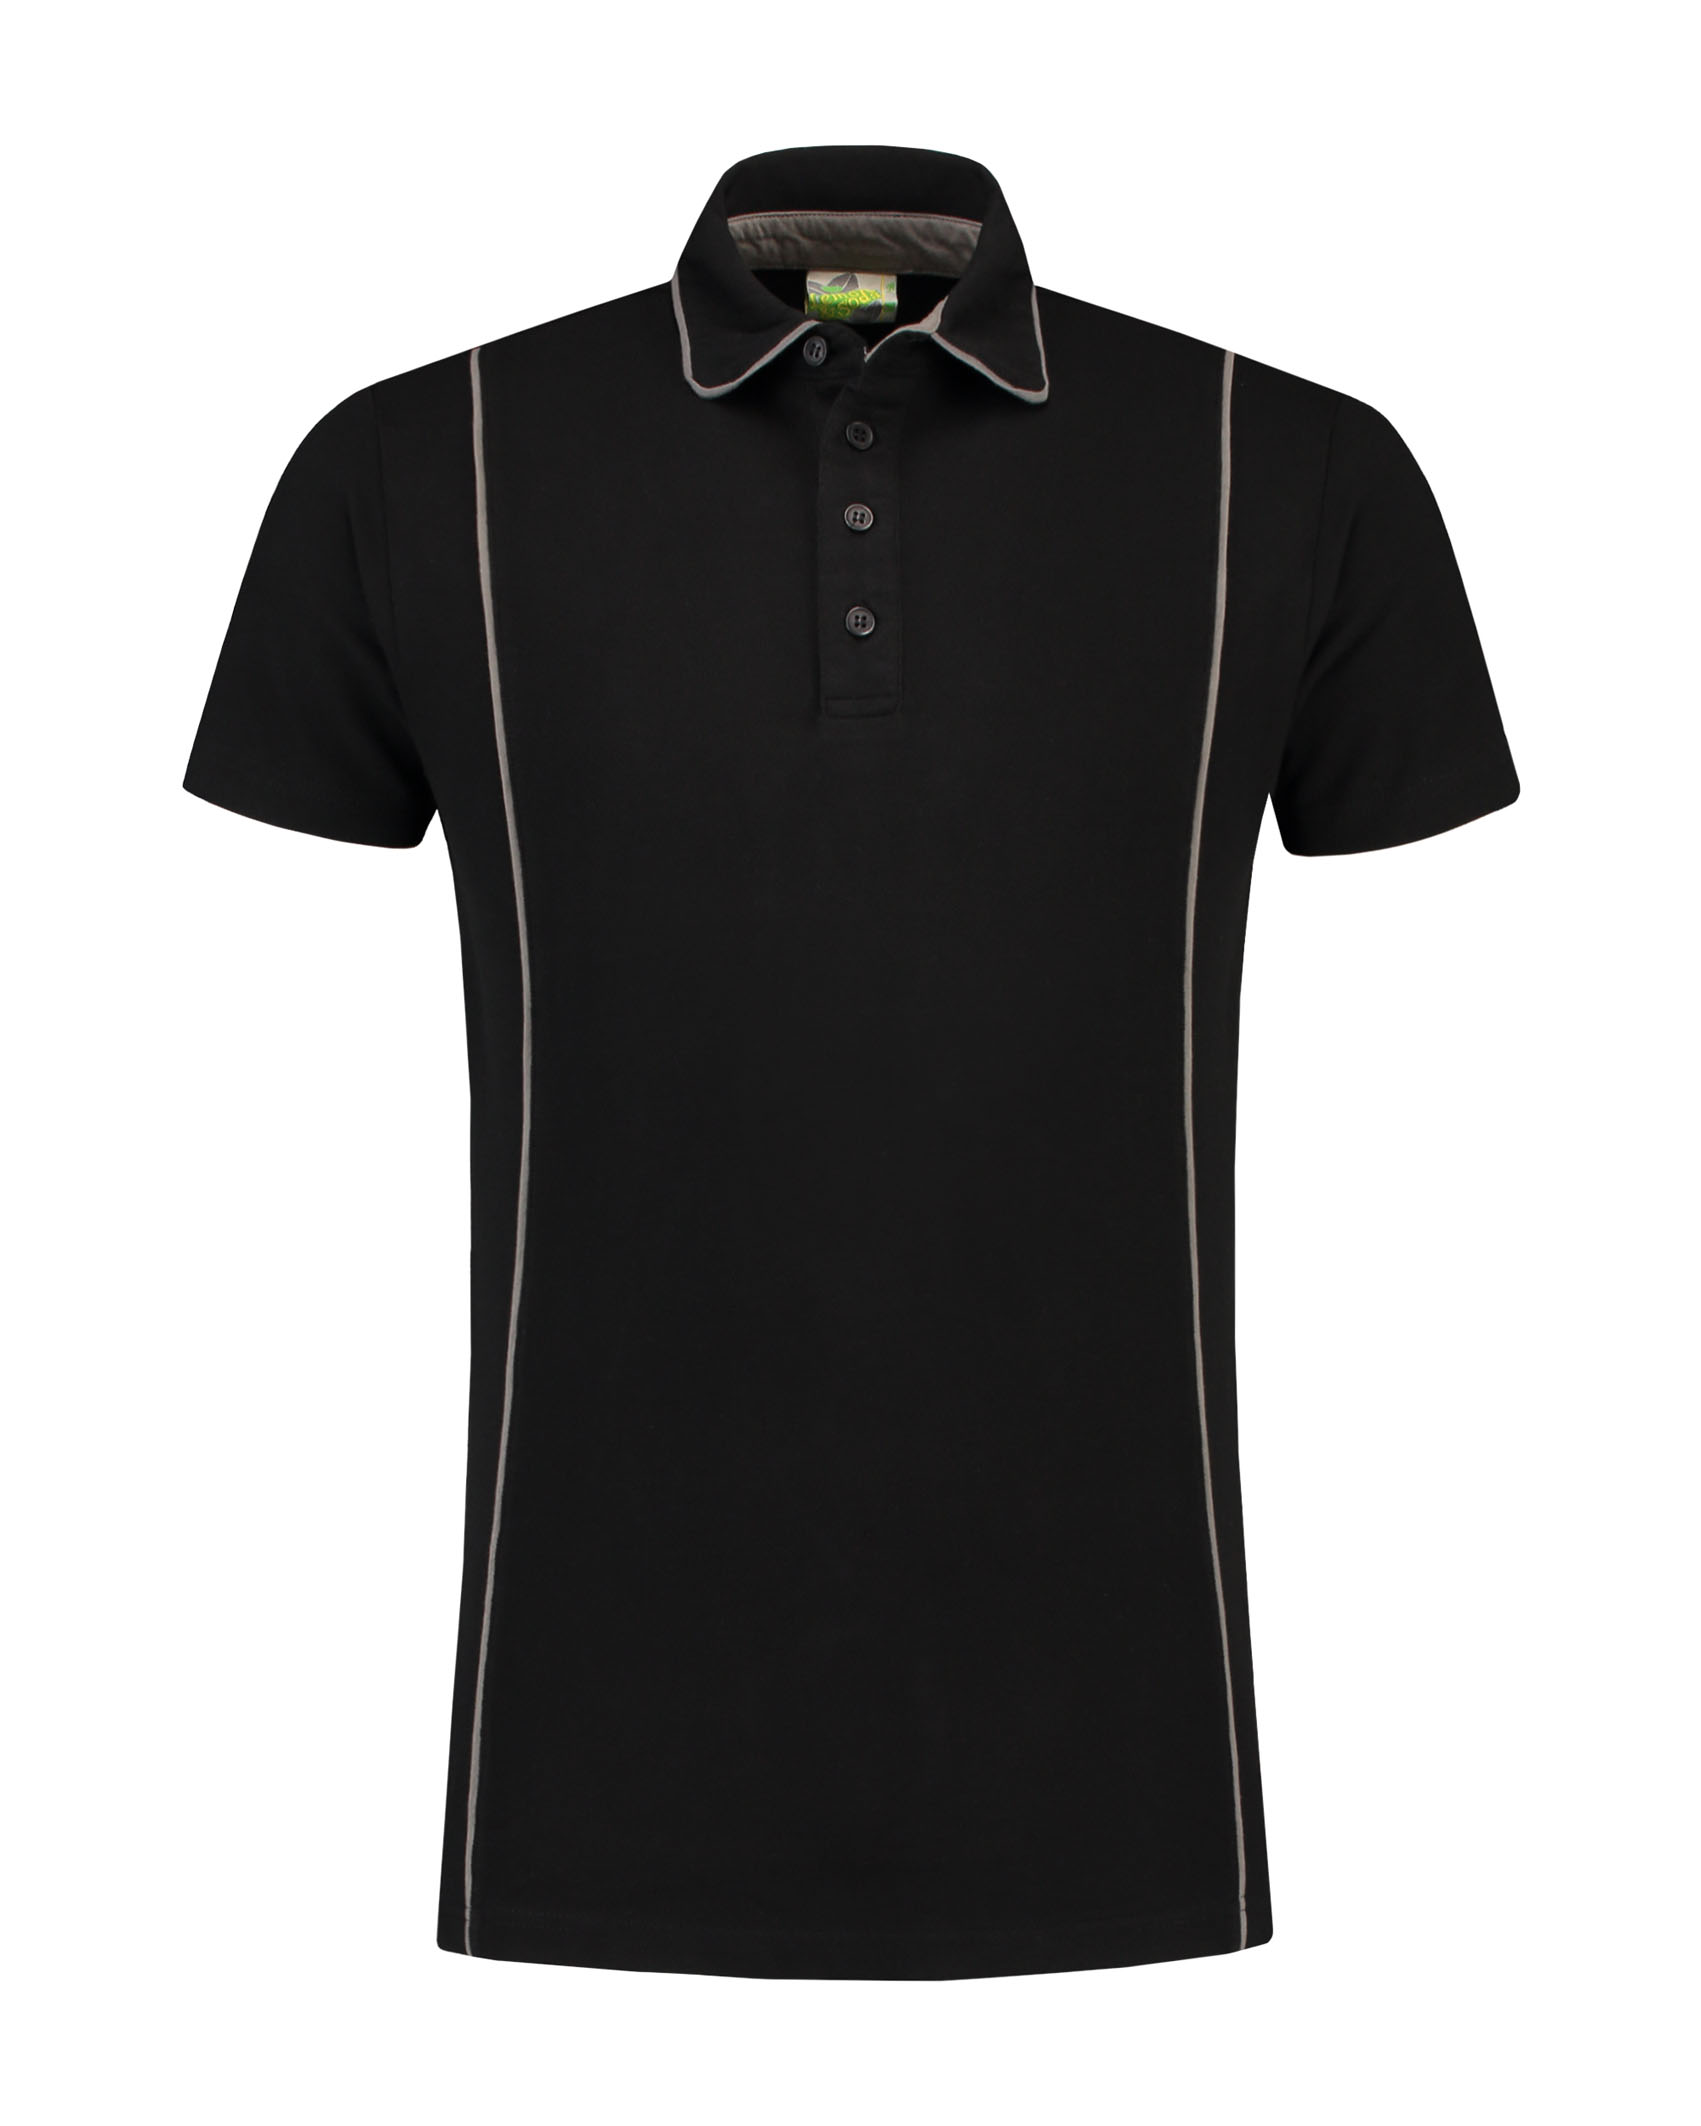 L&S Polo Piping SS for him